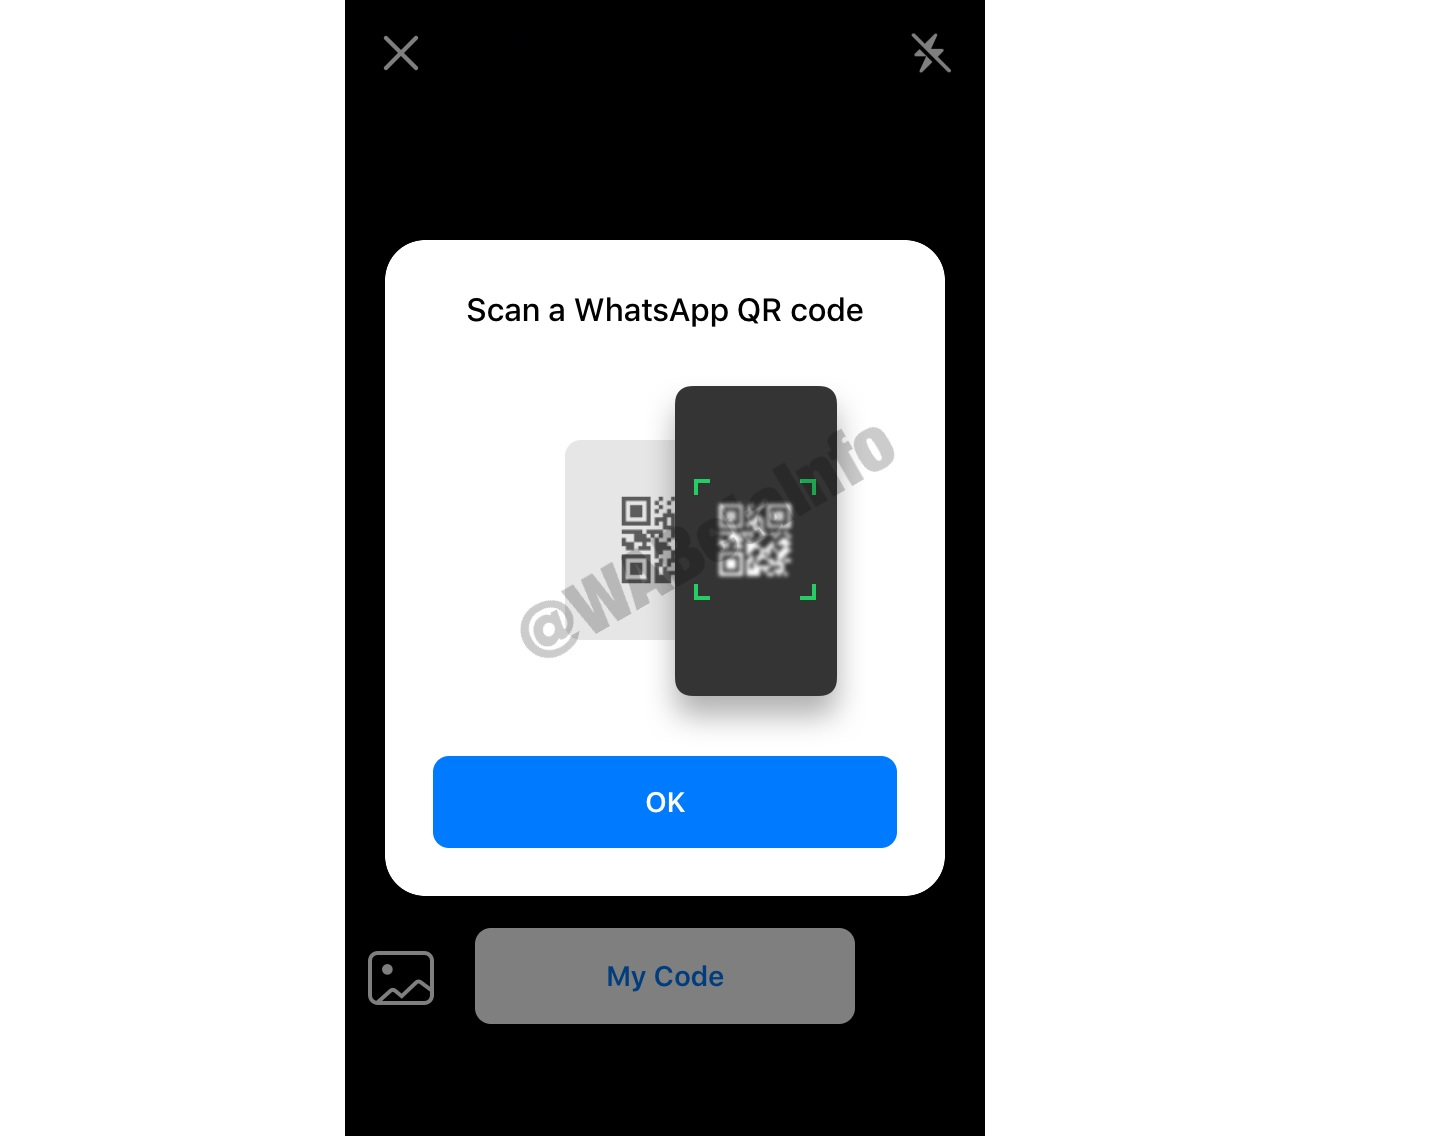 QRCode support comes to WhatsApp beta on iOS - MSPoweruser - MSPoweruser